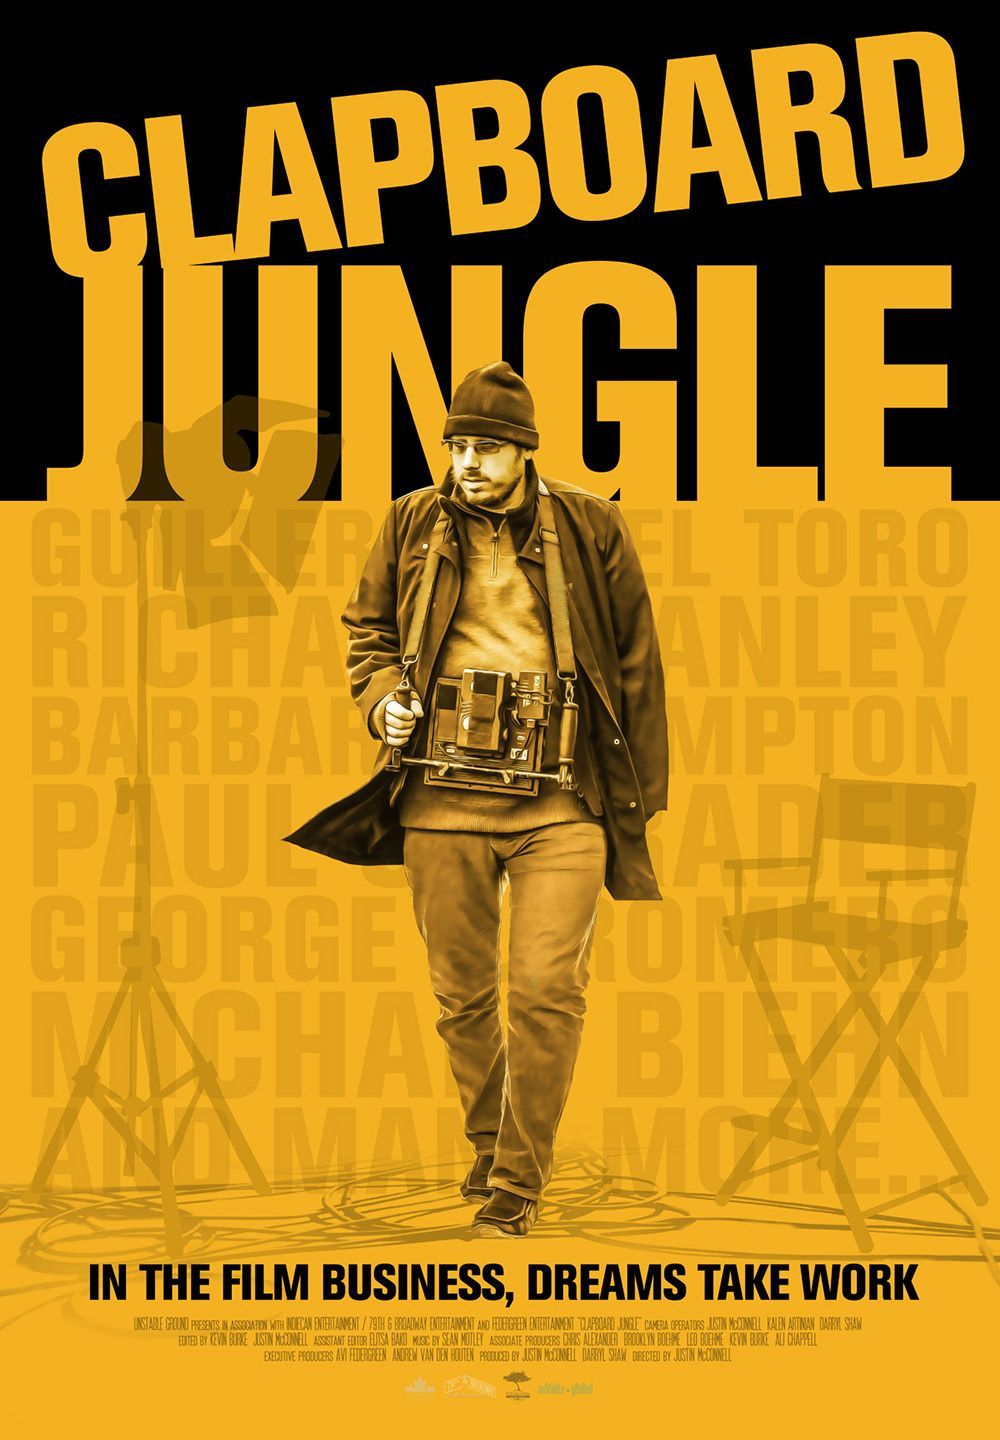 Frightfest Films in Focus #1: Clapboard Jungle